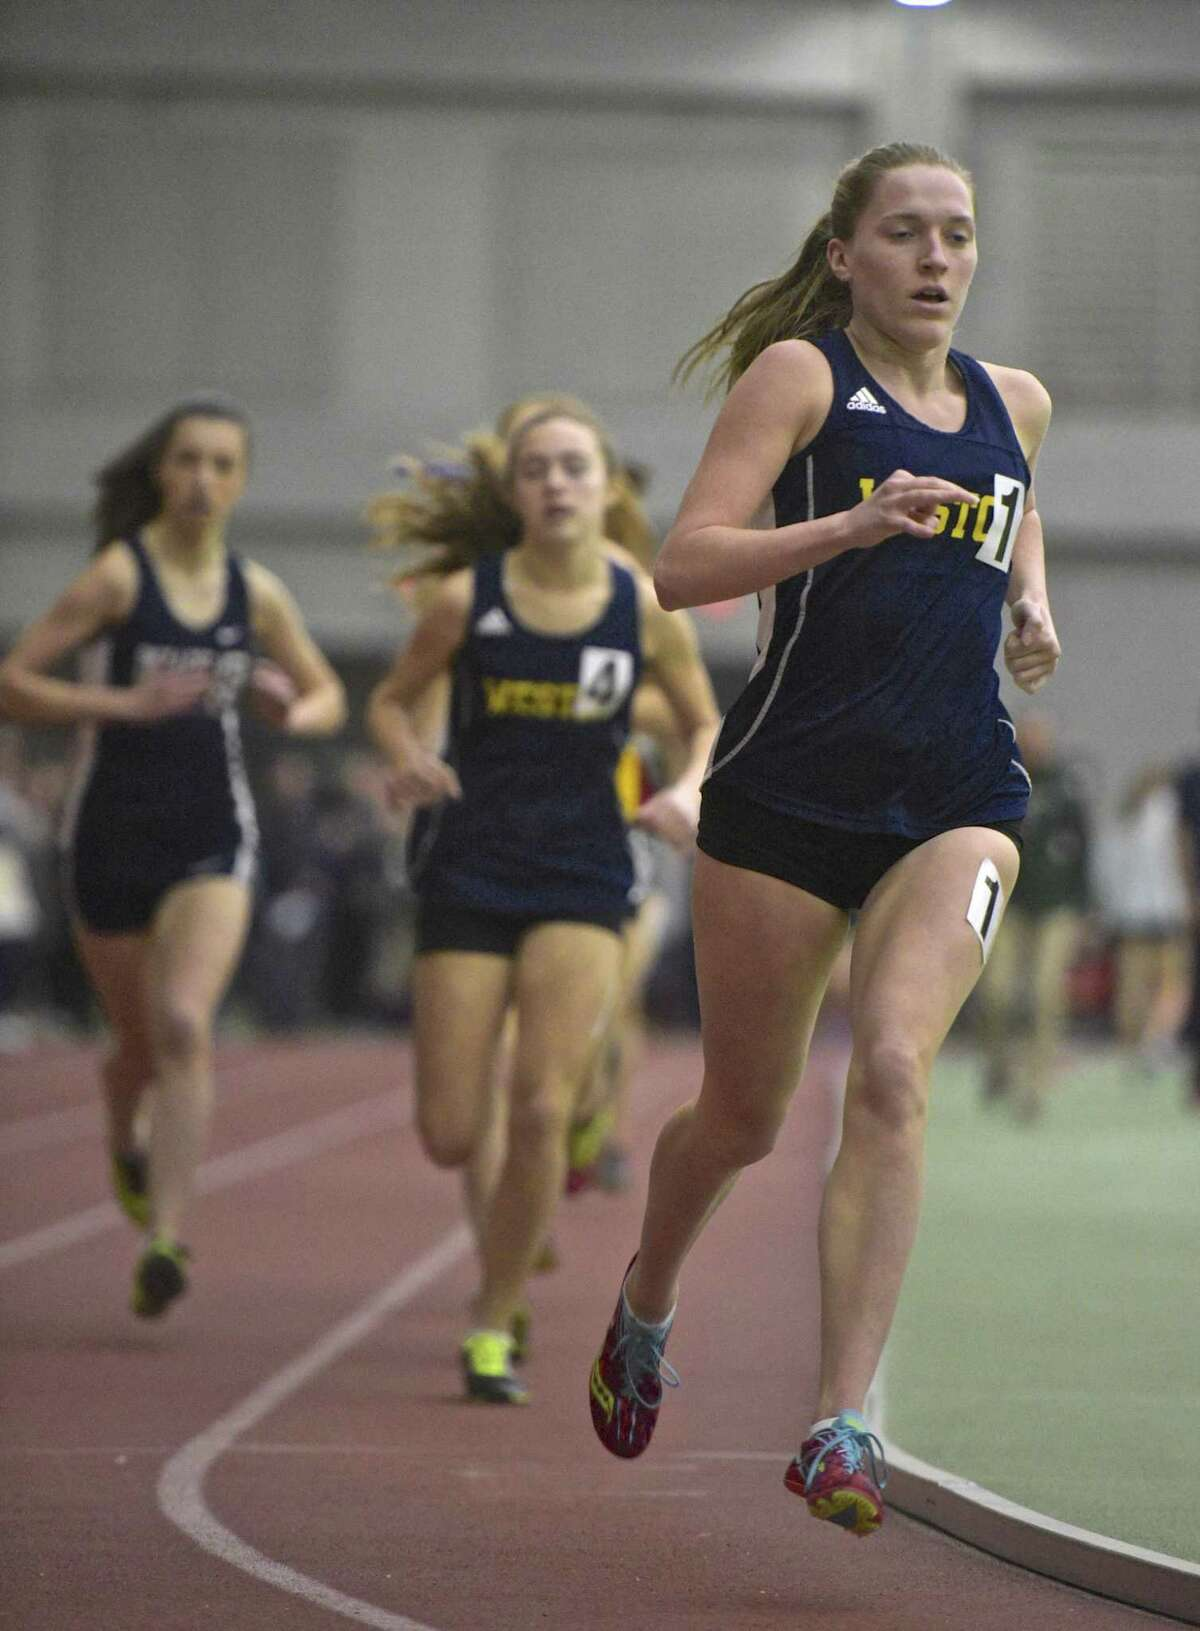 Weston's Kathleen Murphy competes in the 1000 meter run in the SWC girls indoor track championship at Floyd Little Athletic Center, New Haven, Conn, on Saturday night, February 3, 2018.